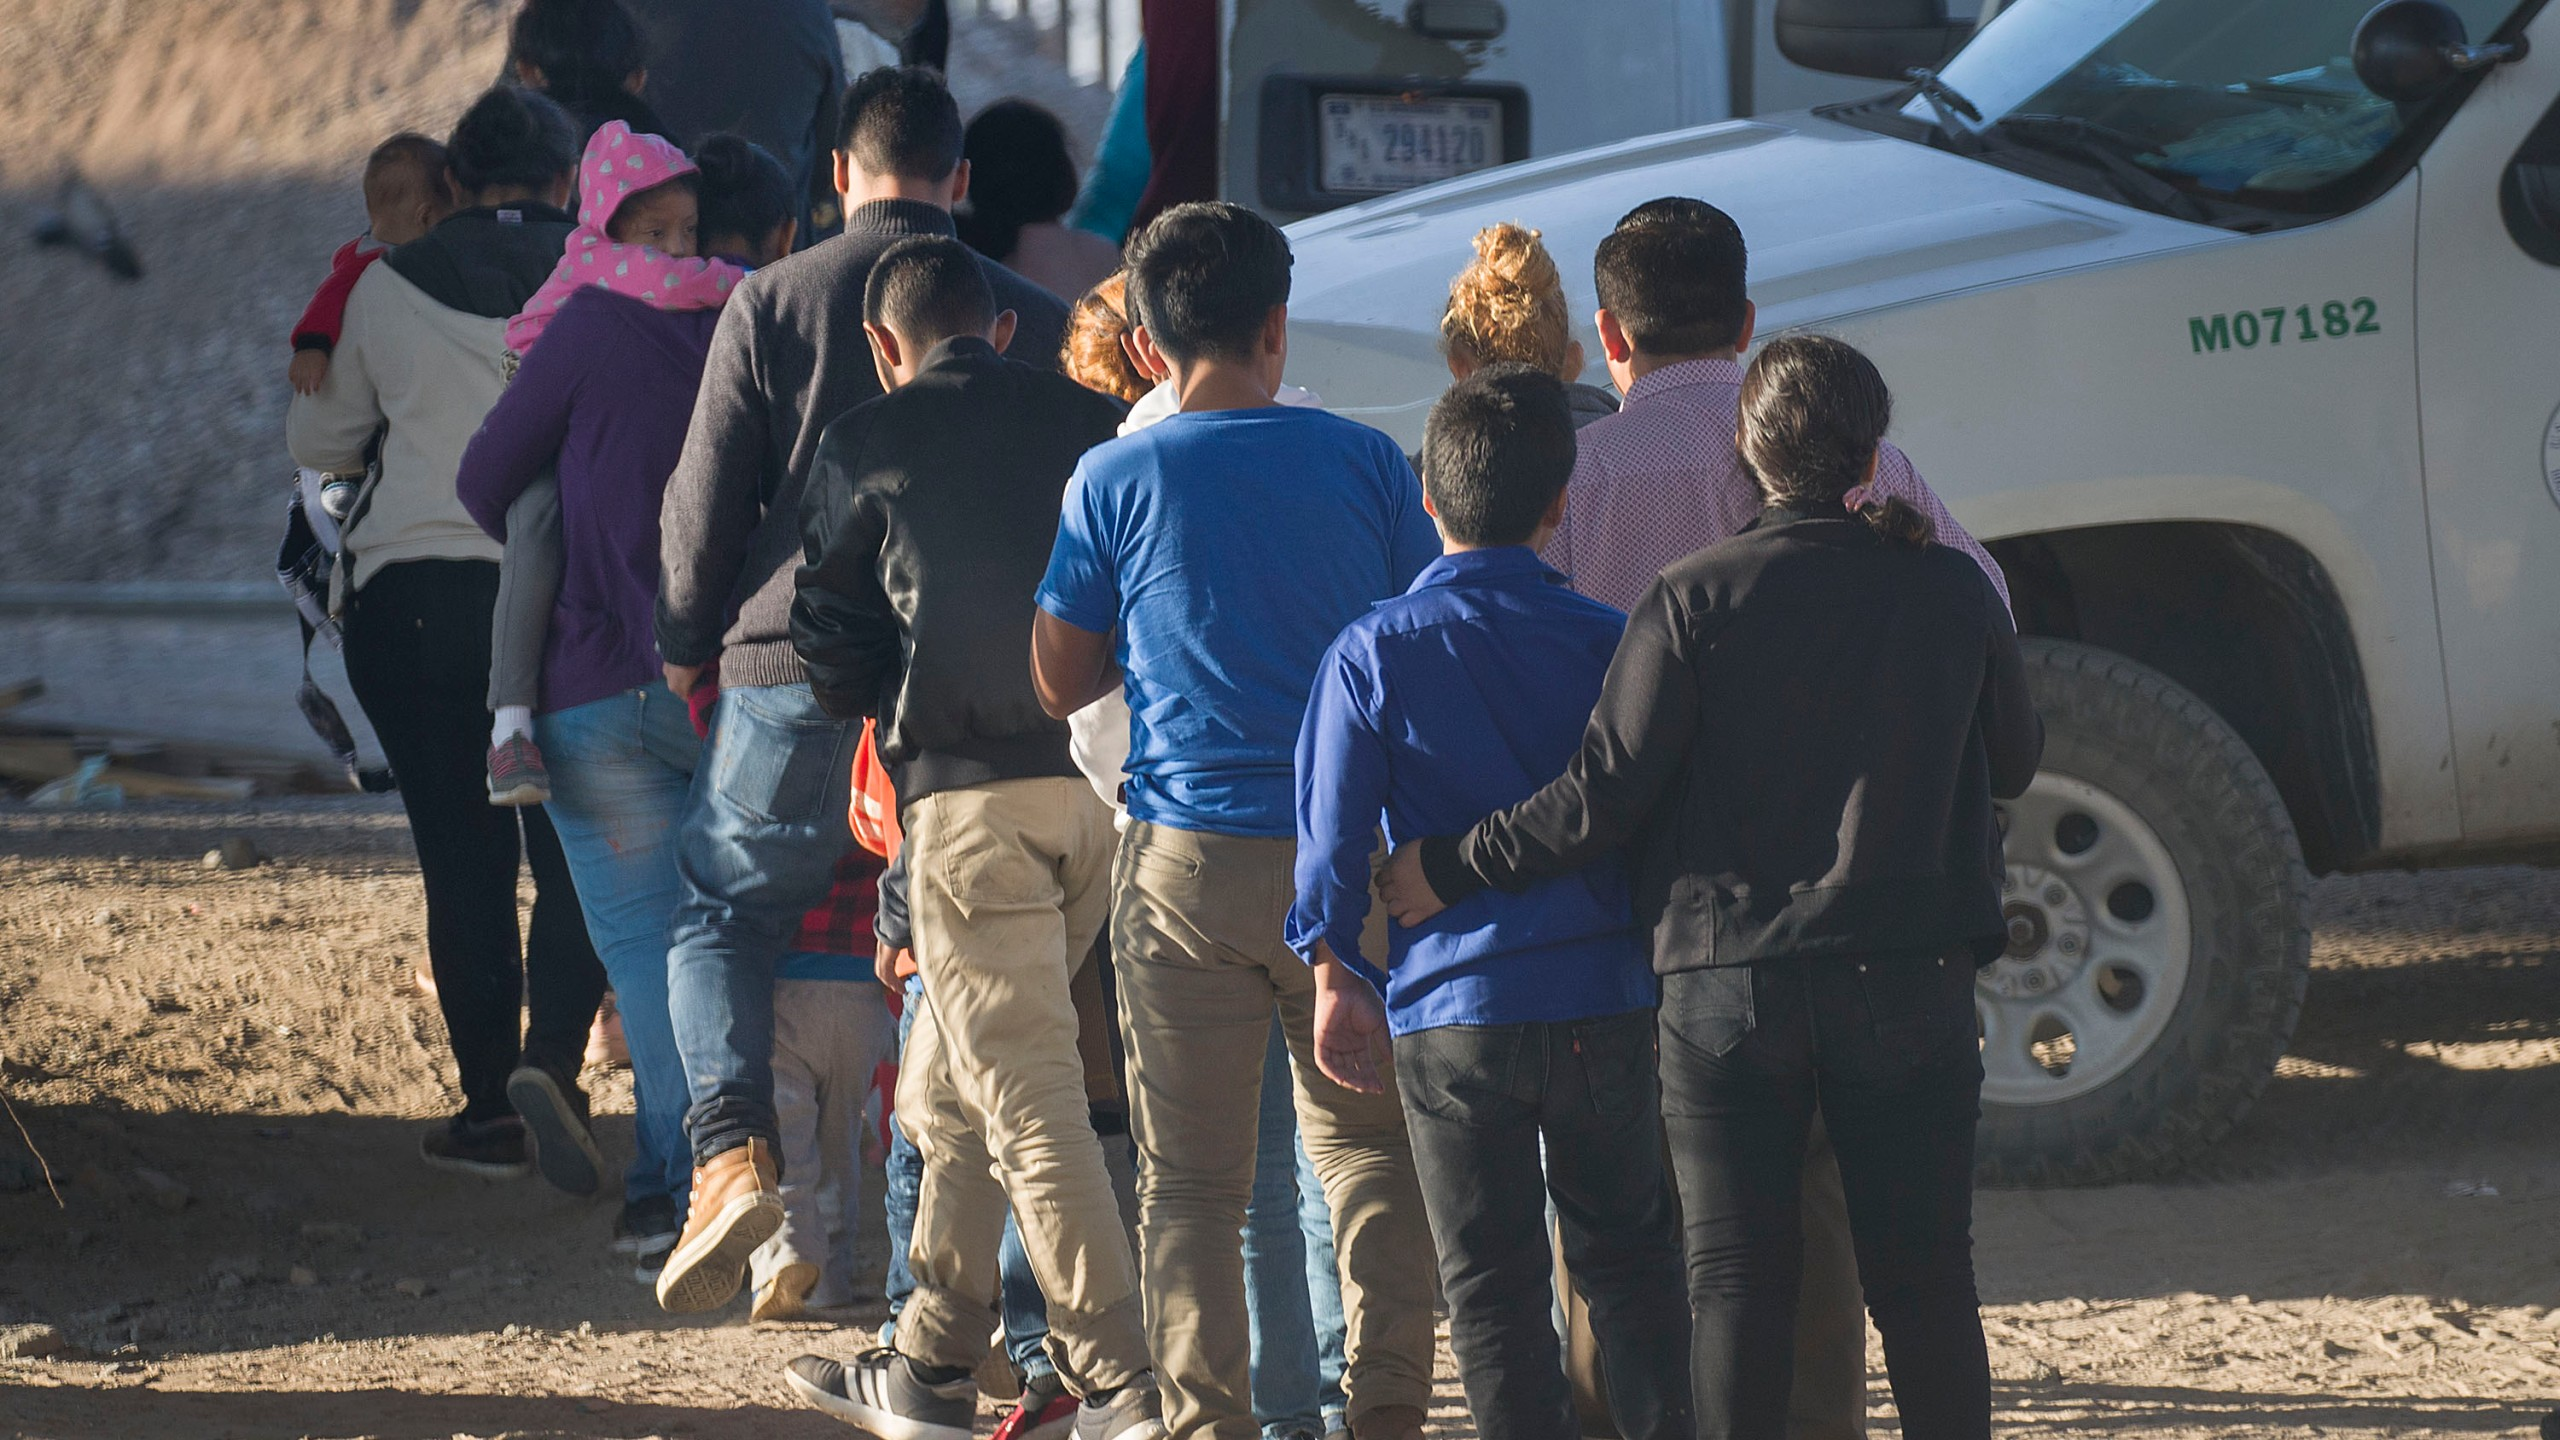 Migrants wait to be processed and loaded onto a bus by U.S. border agents after being detained when they crossed illegally into El Paso, Texas, from Mexico on June 2, 2019. (Credit: Joe Raedle / Getty Images)